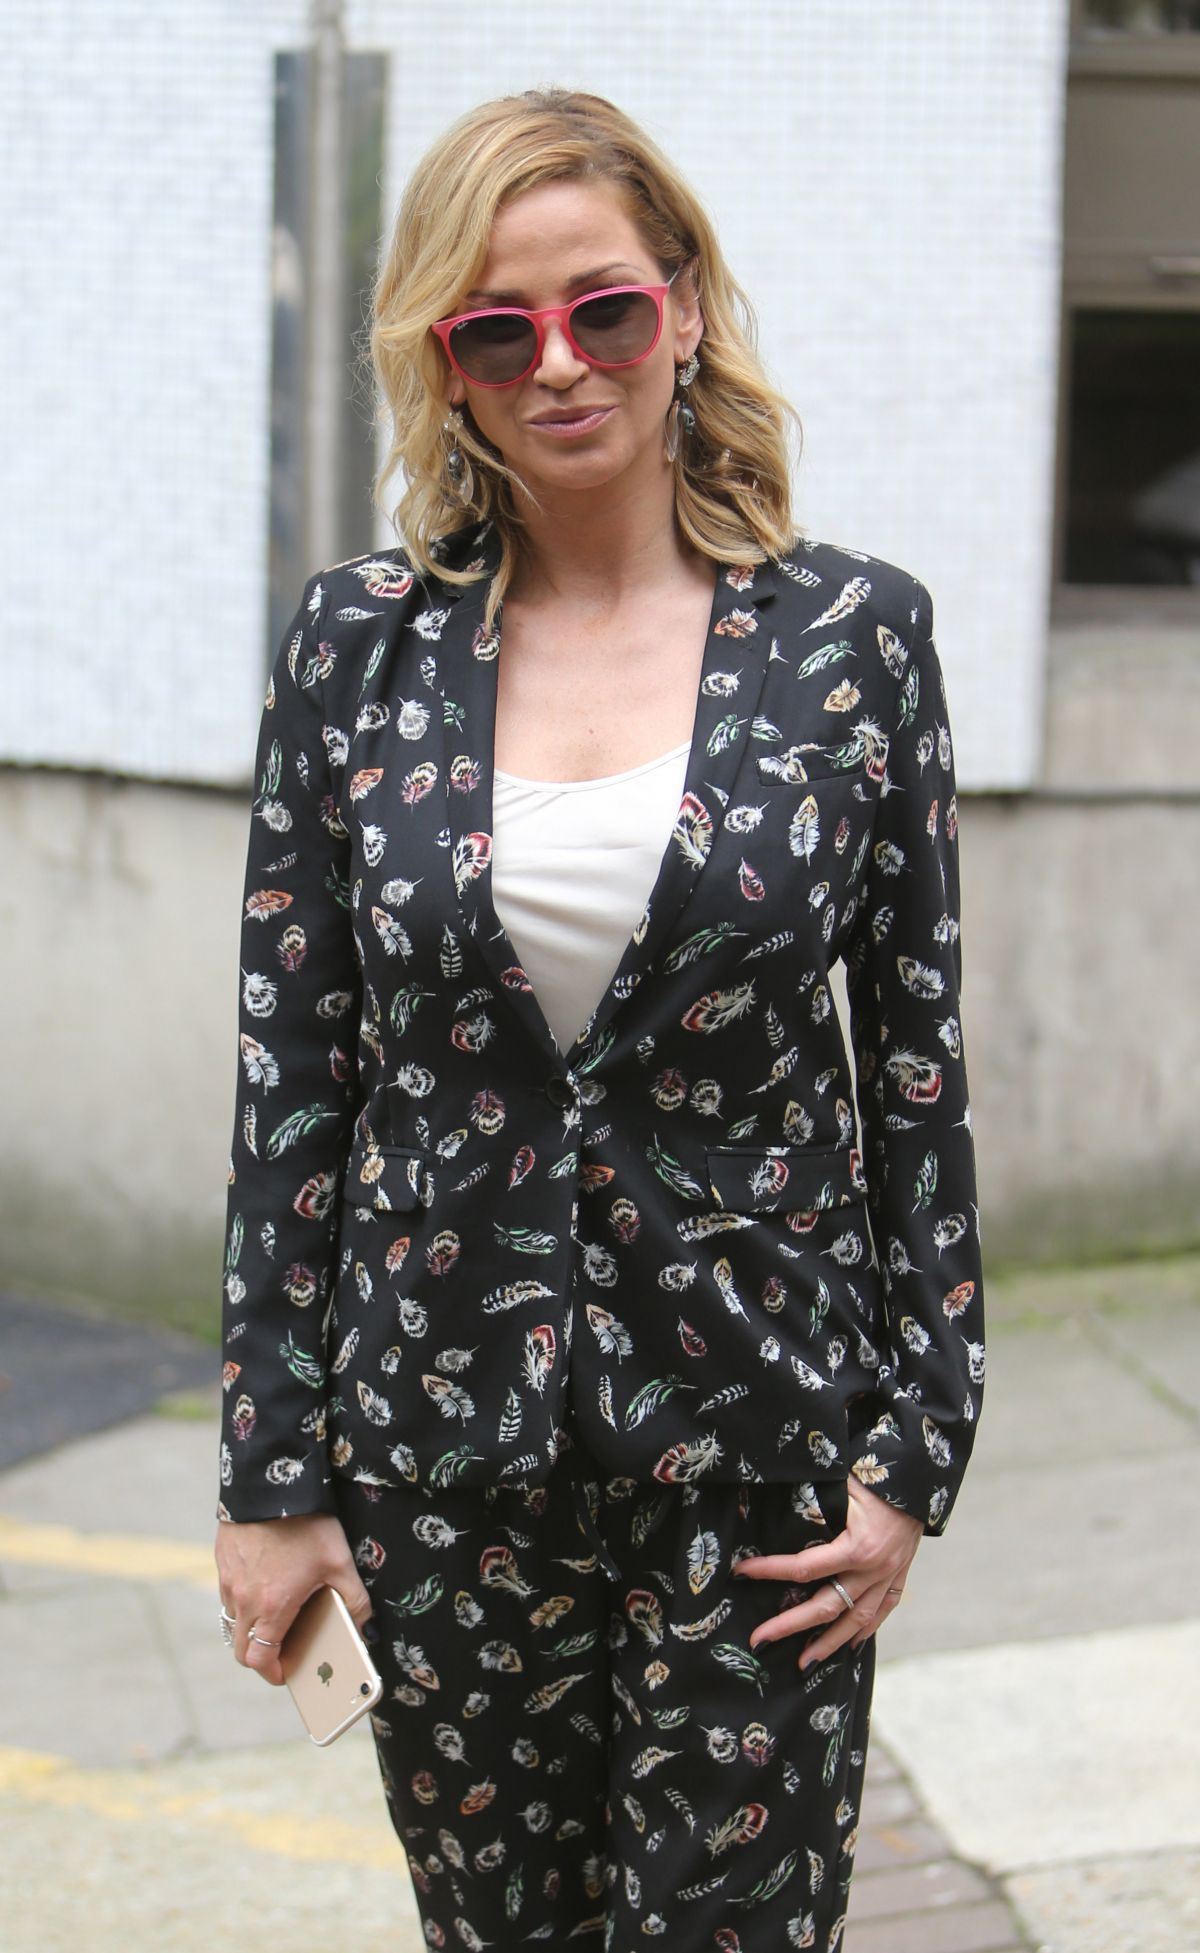 SARAH HARDING Arrives at ITV Studios in London 09/05/2017